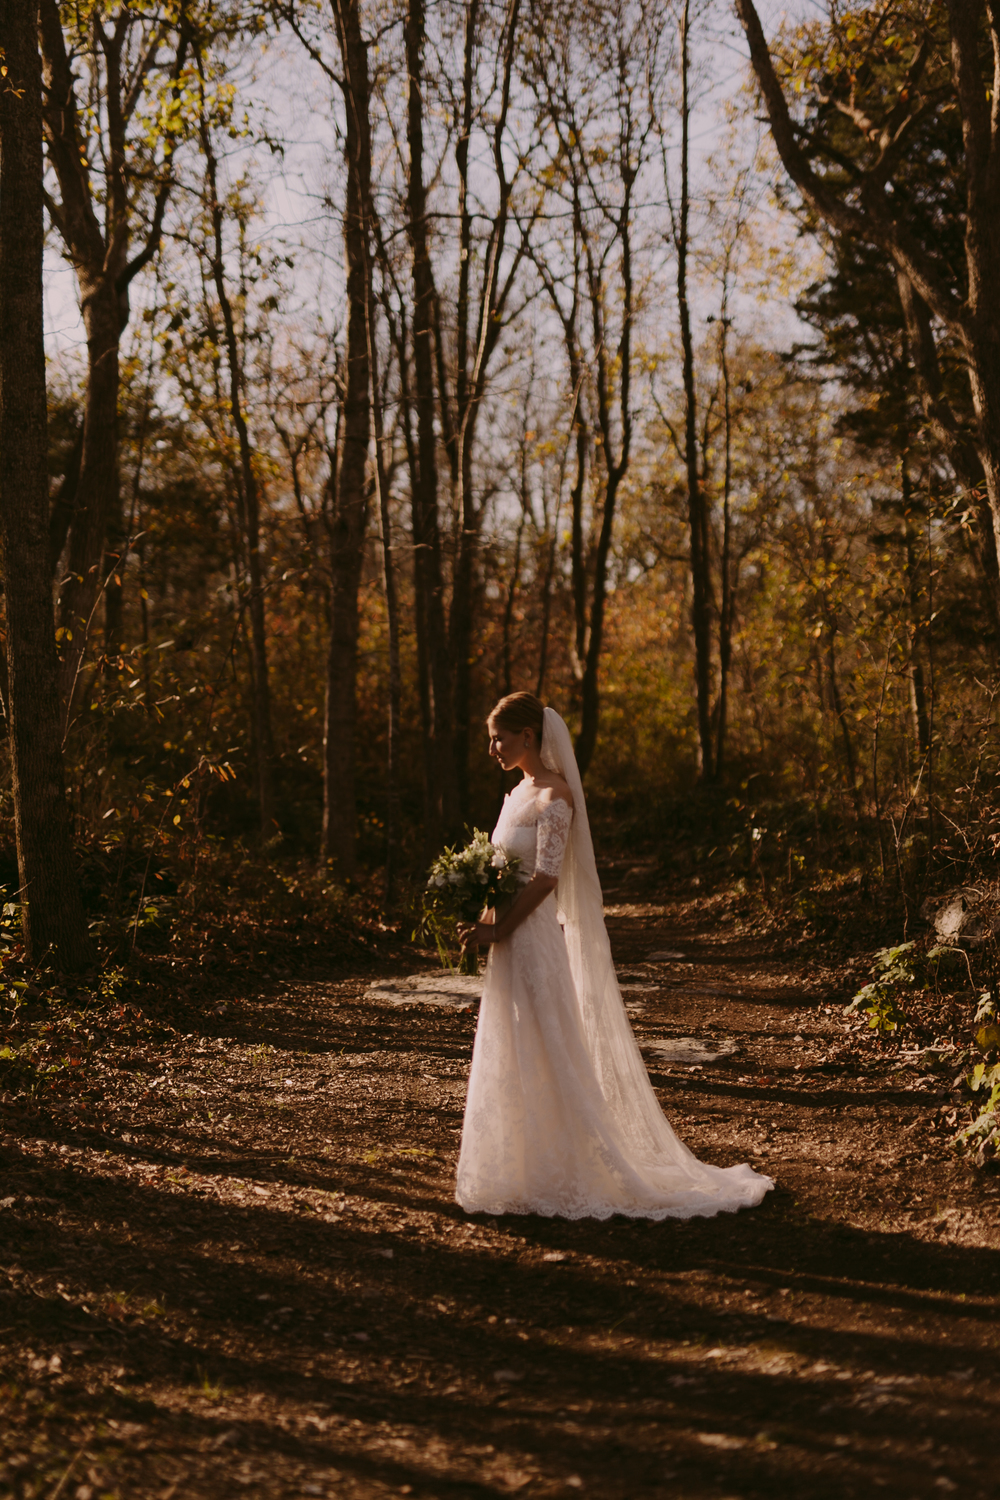 Nashville Wedding The Wrens Nest Modern Vintage Photography Anthology (25 of 105).jpg